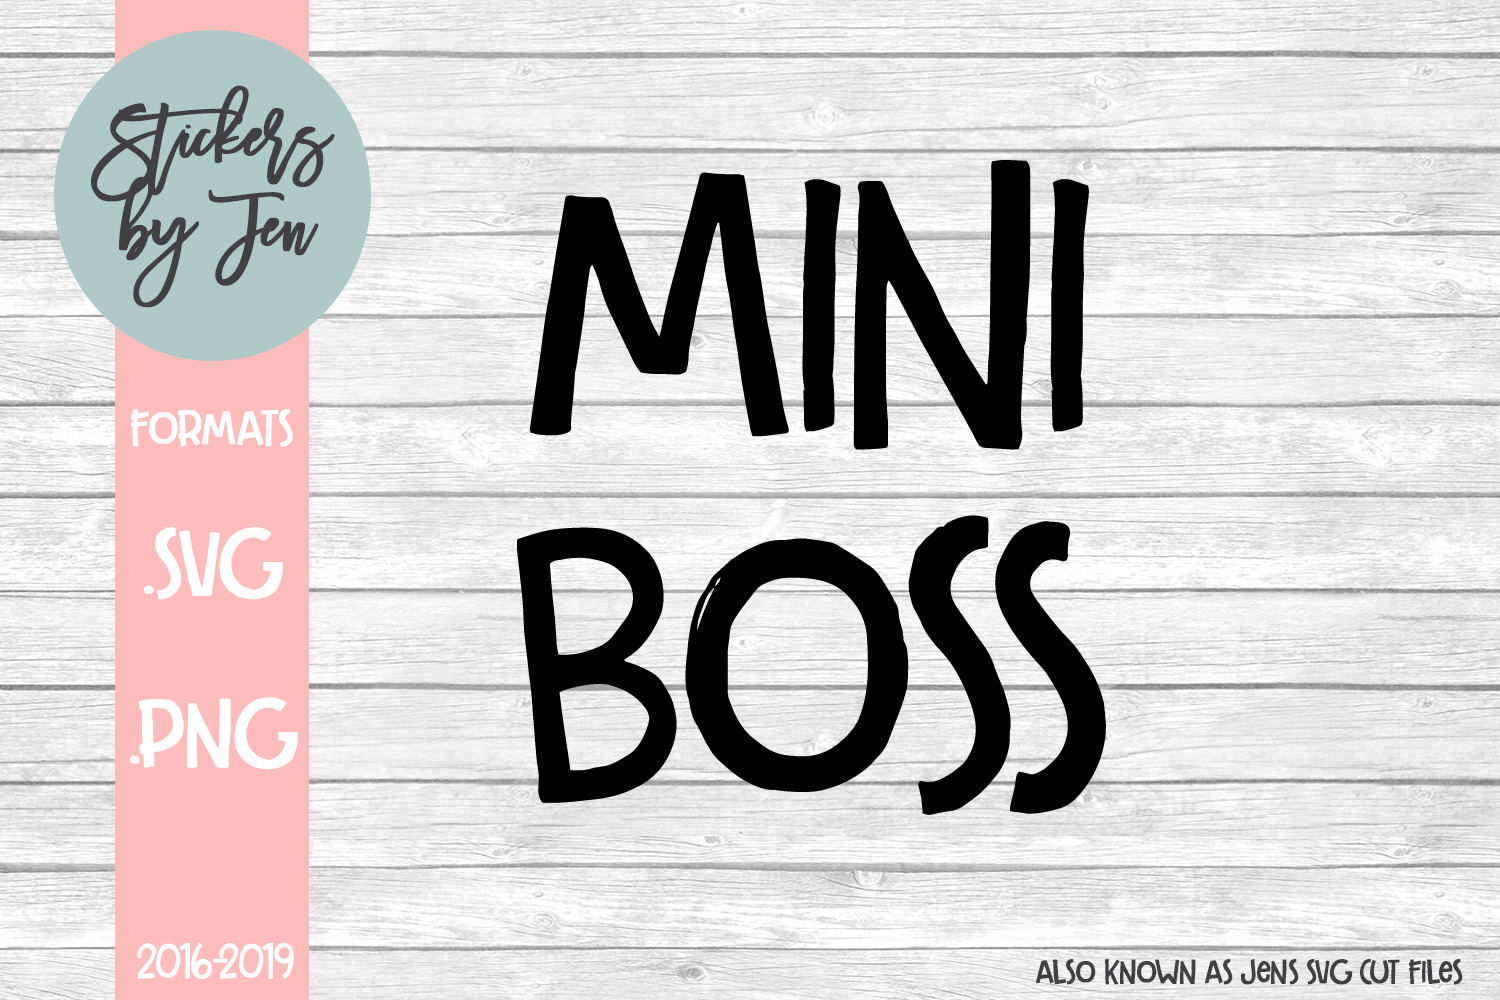 Download Free Mini Boss Svg Graphic By Jens Svg Cut Files Creative Fabrica for Cricut Explore, Silhouette and other cutting machines.